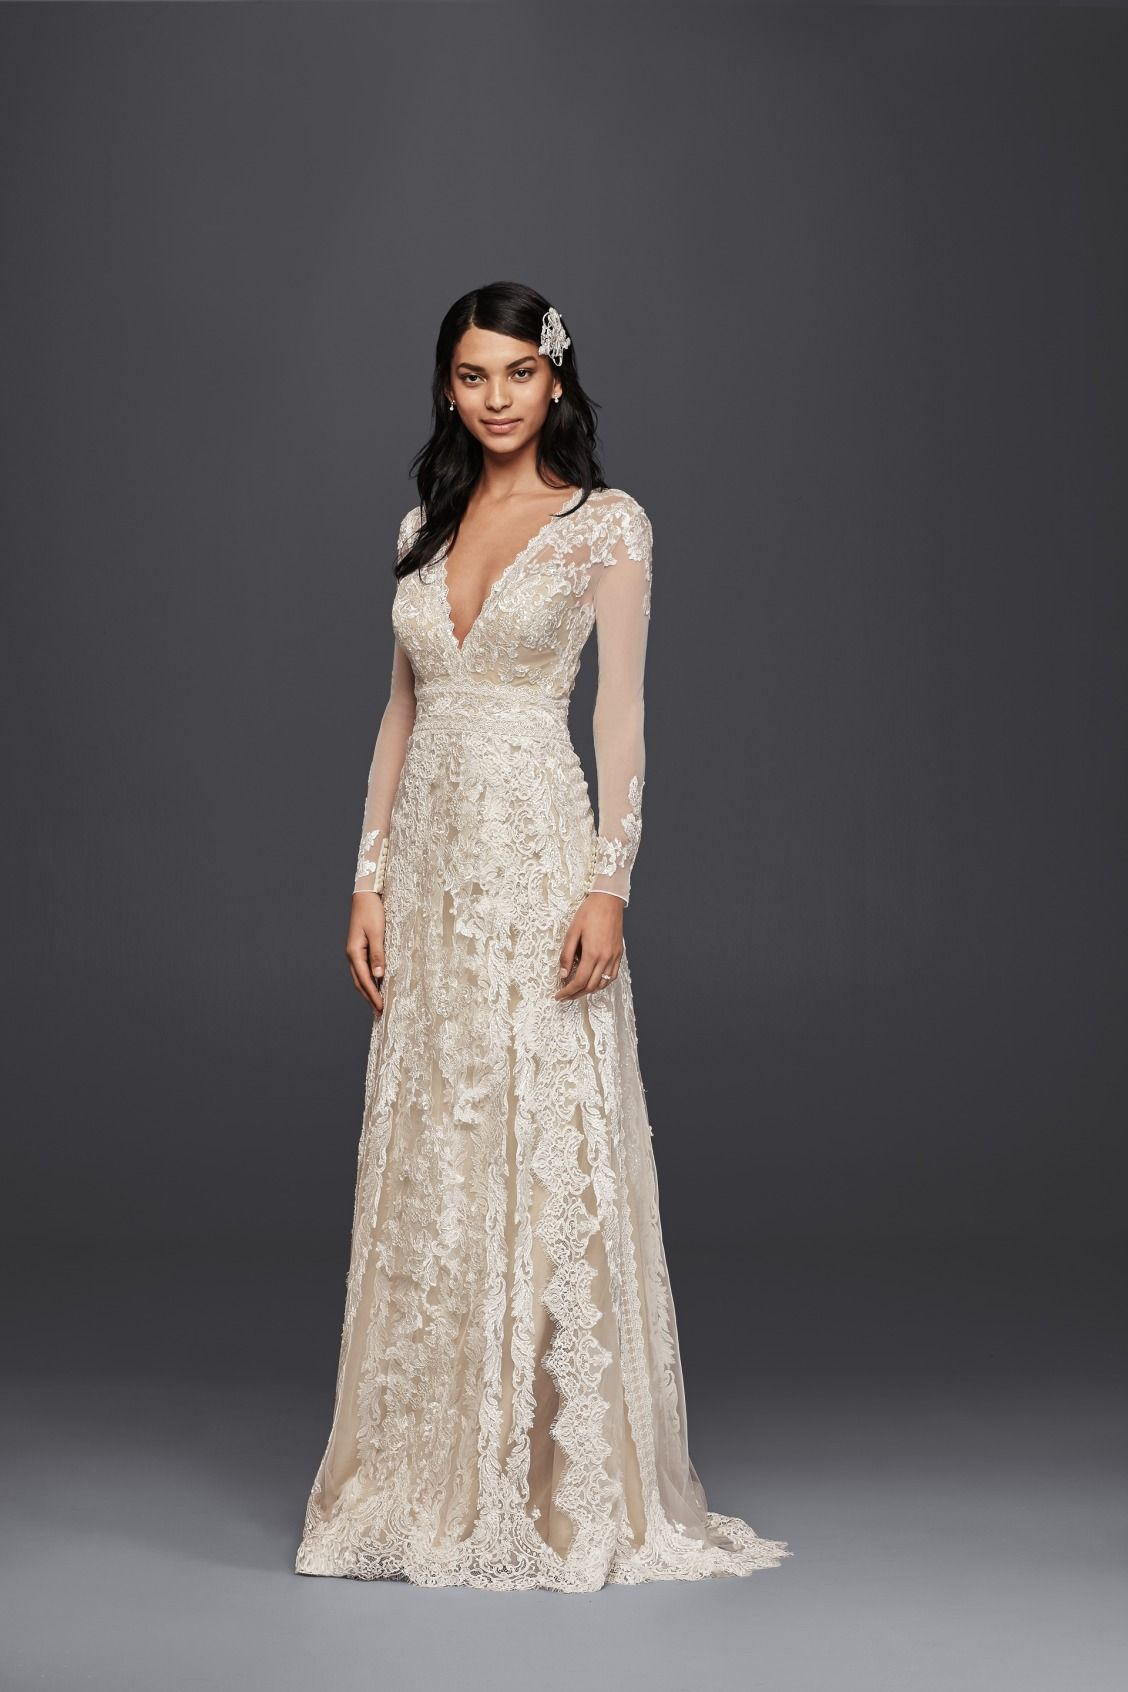 A lace sheath wedding dress with plunging neckline and lace long